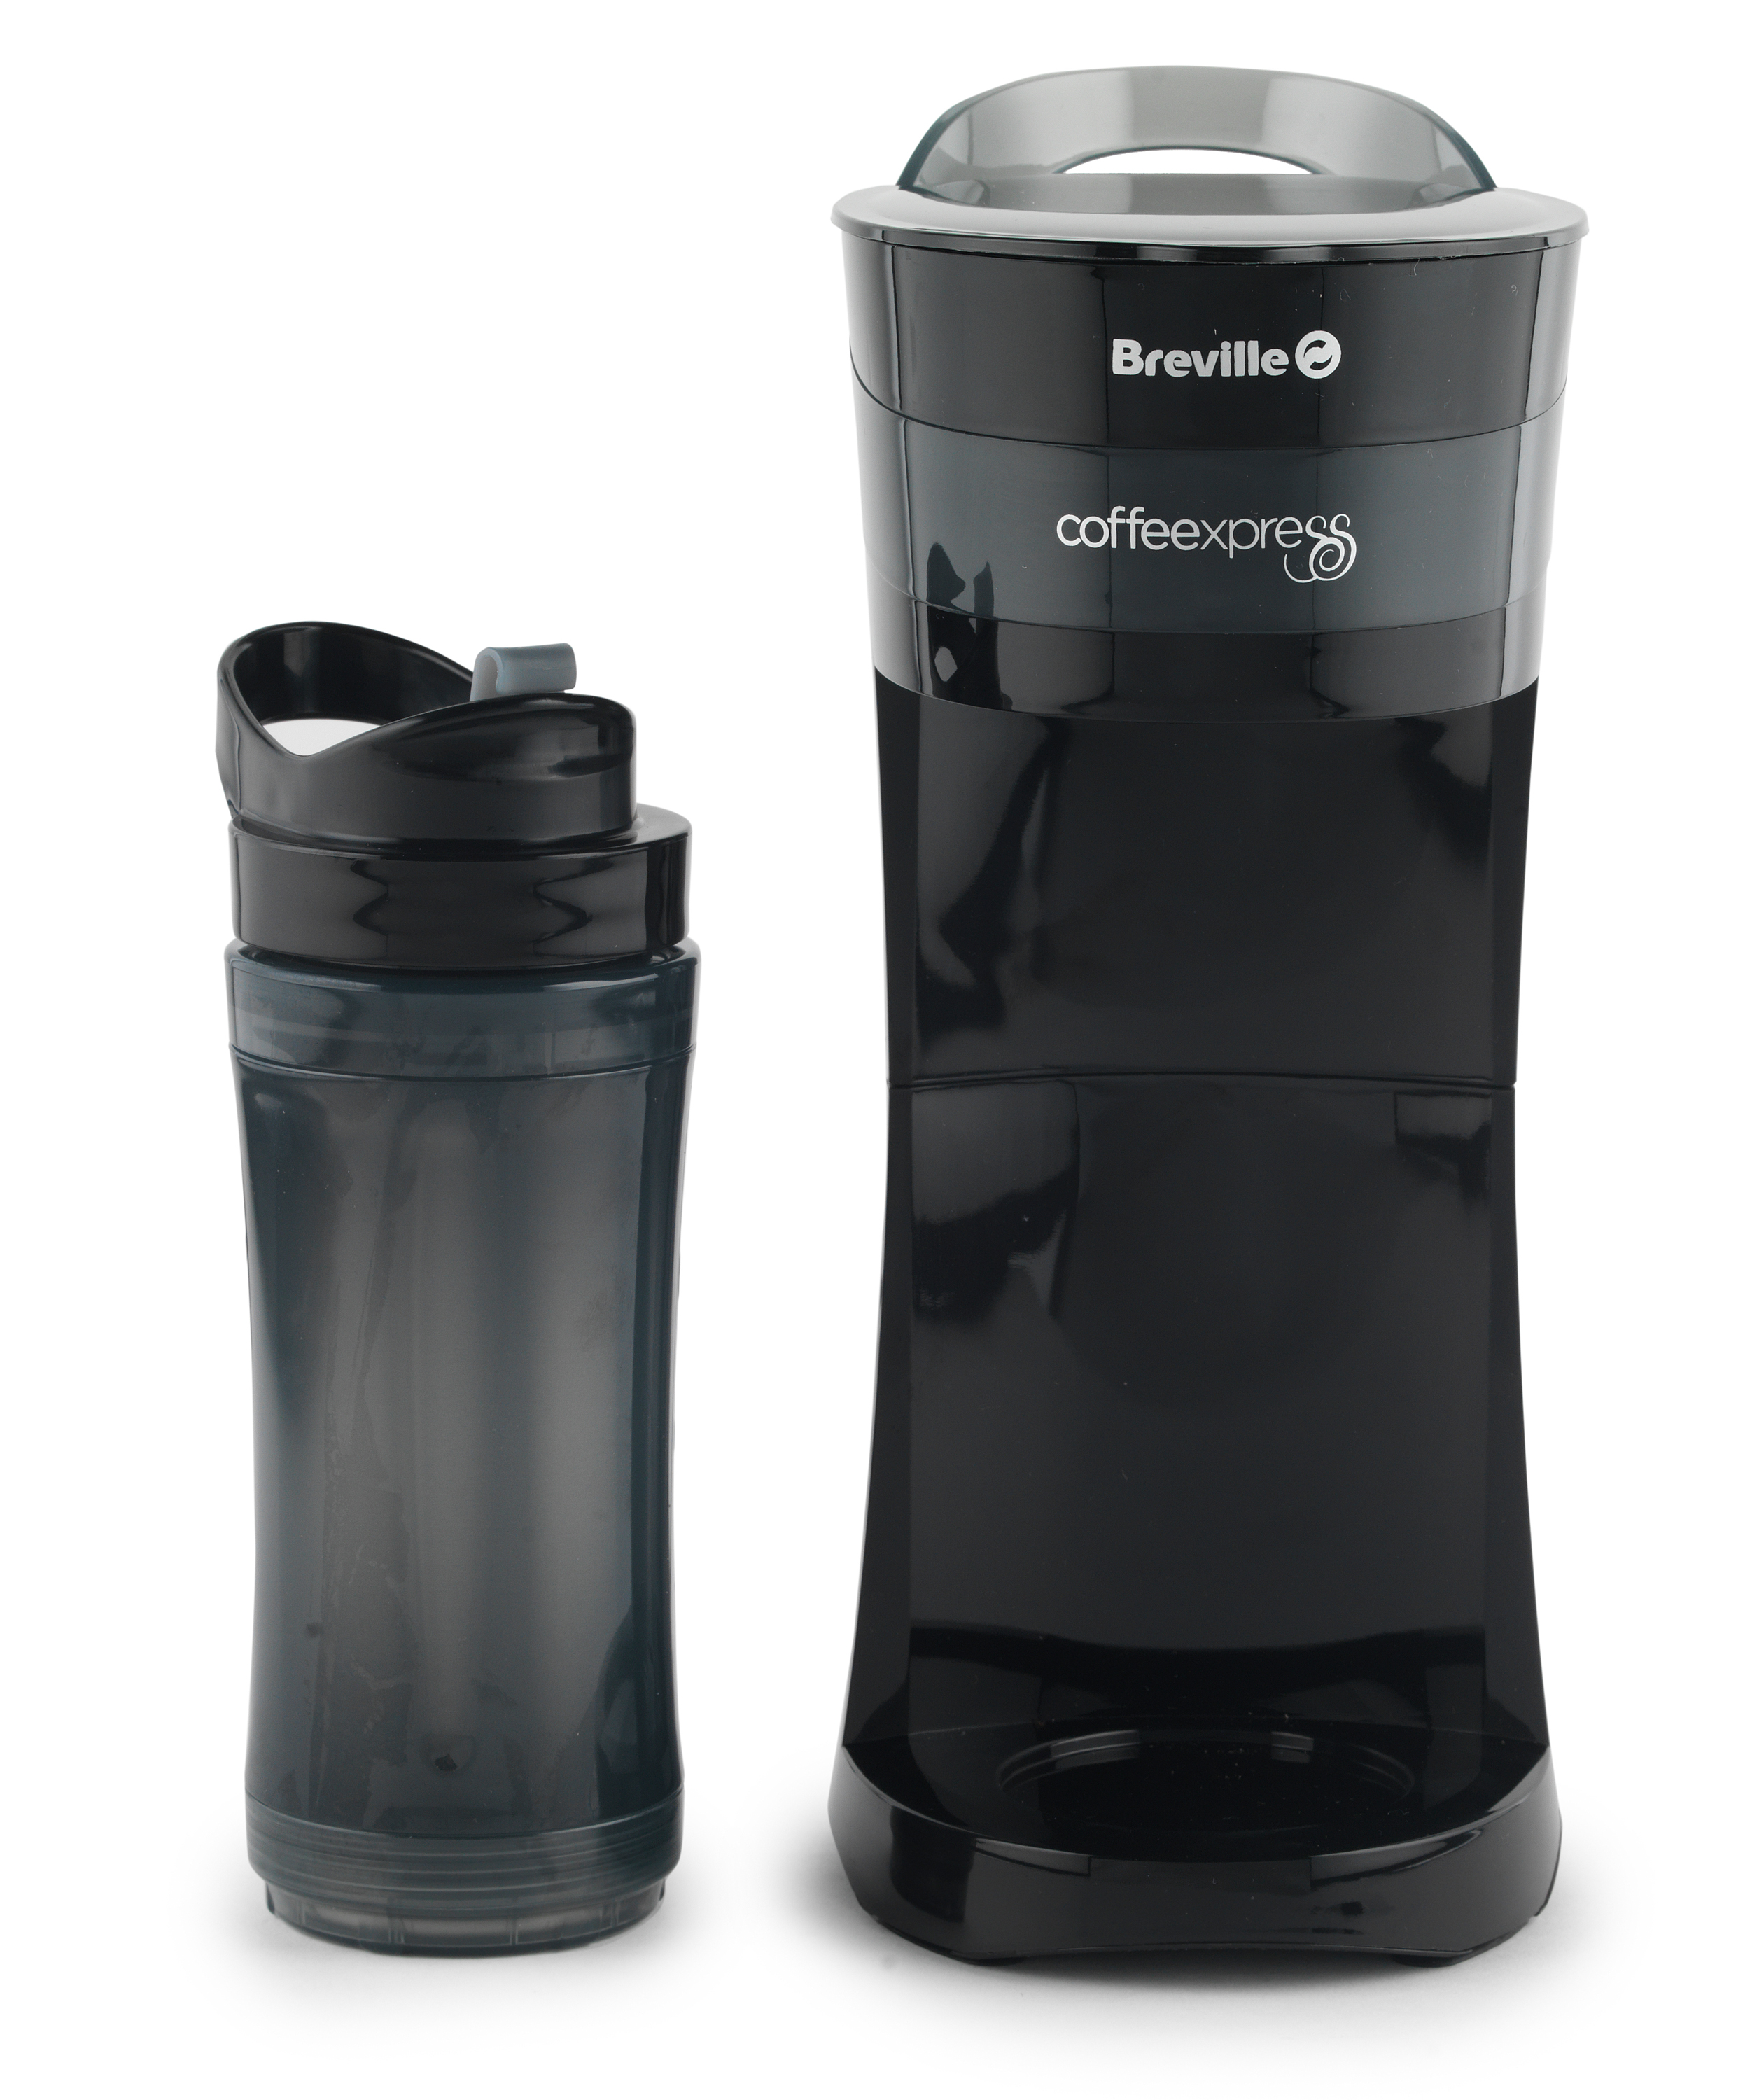 Breville Small Kitchen Appliances